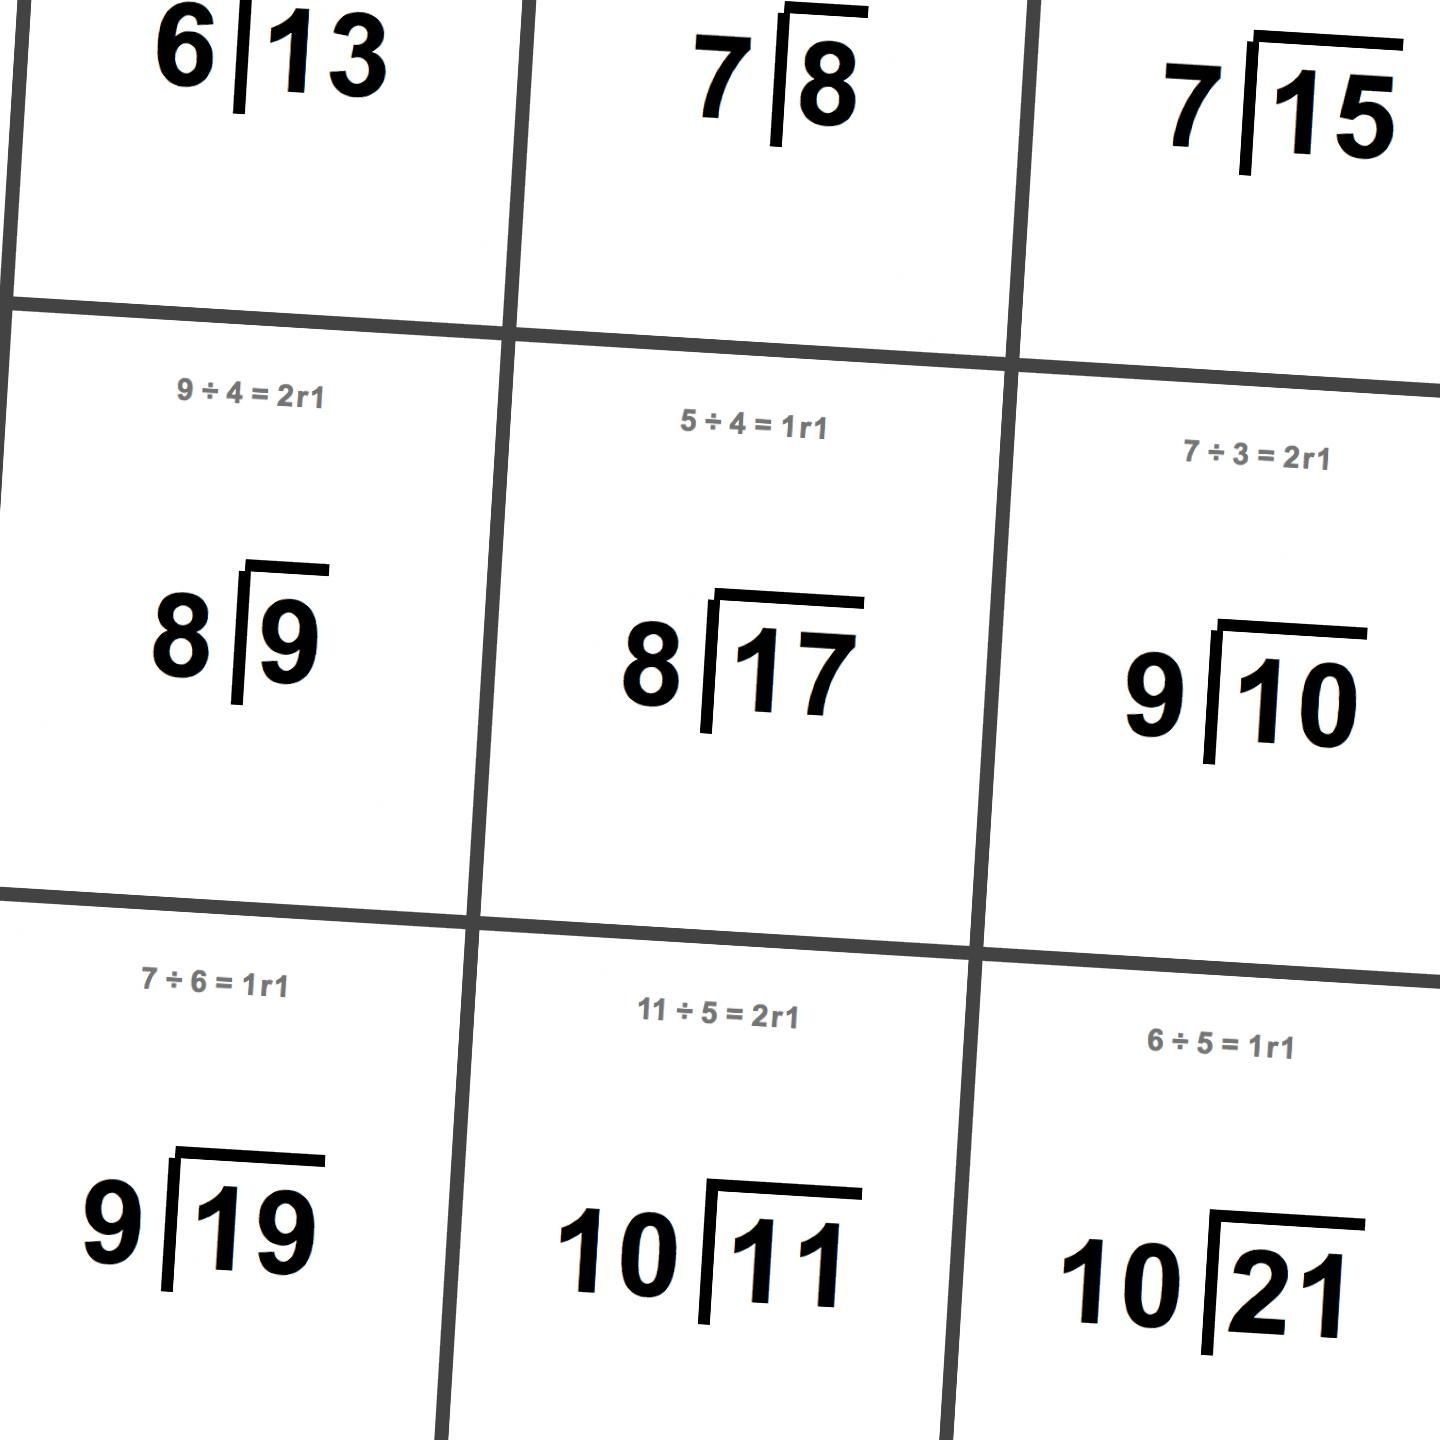 Printable Flash Cards: Division With Remainders   Math Worksheets - Free Printable Division Flash Cards